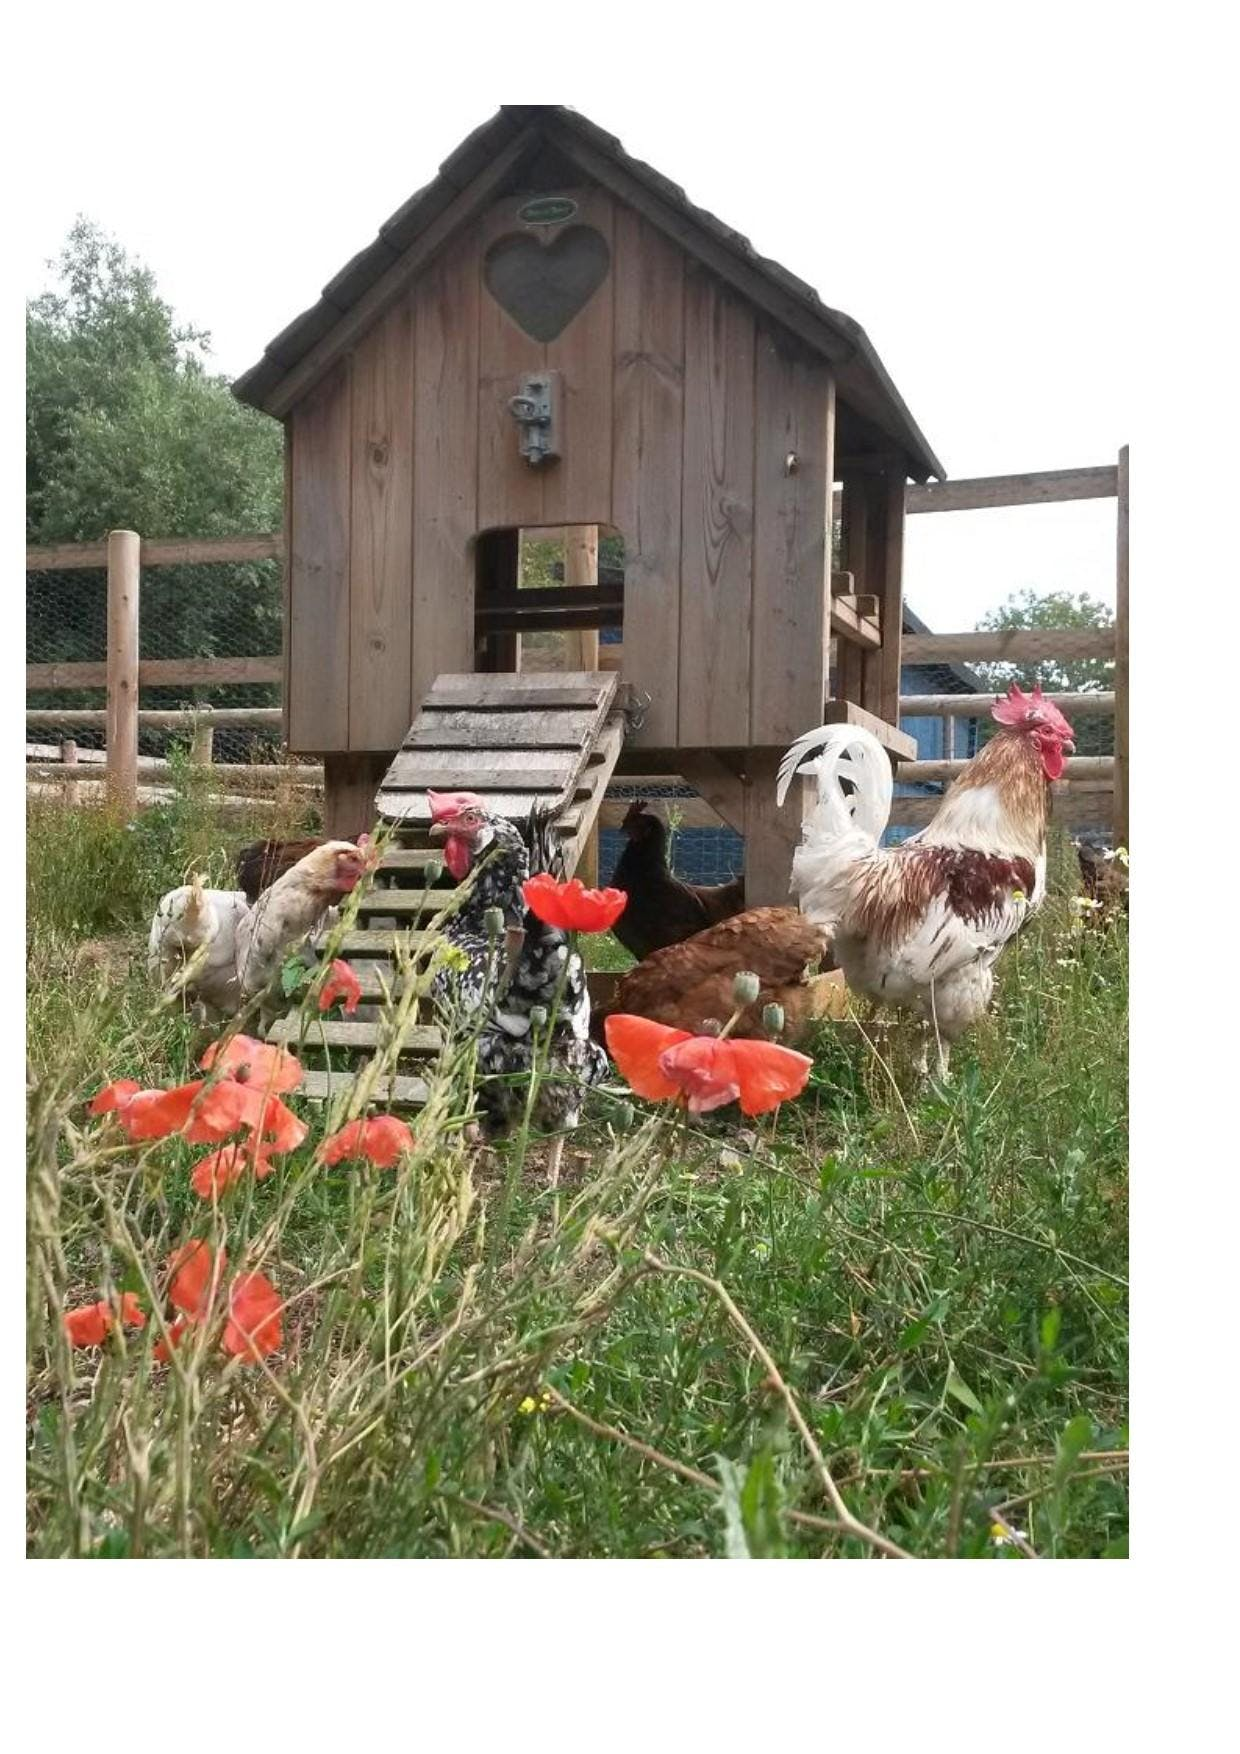 Introduction to Smallholding, the theory and